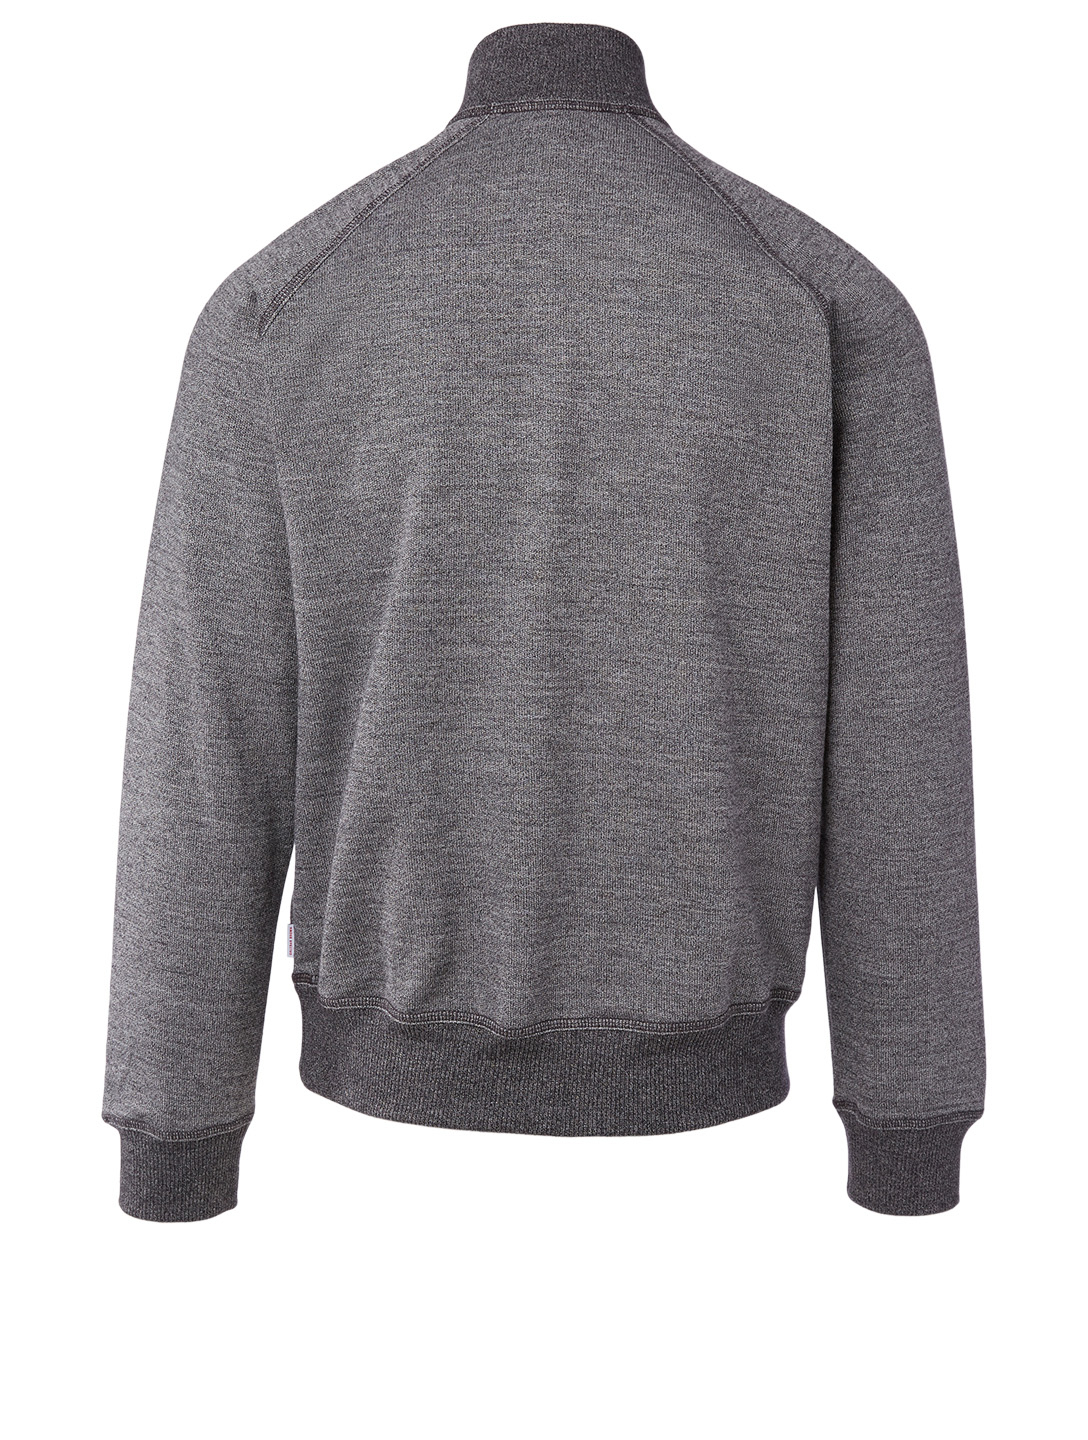 ORLEBAR BROWN Isar Cotton And Wool Zip Sweater Men's Grey